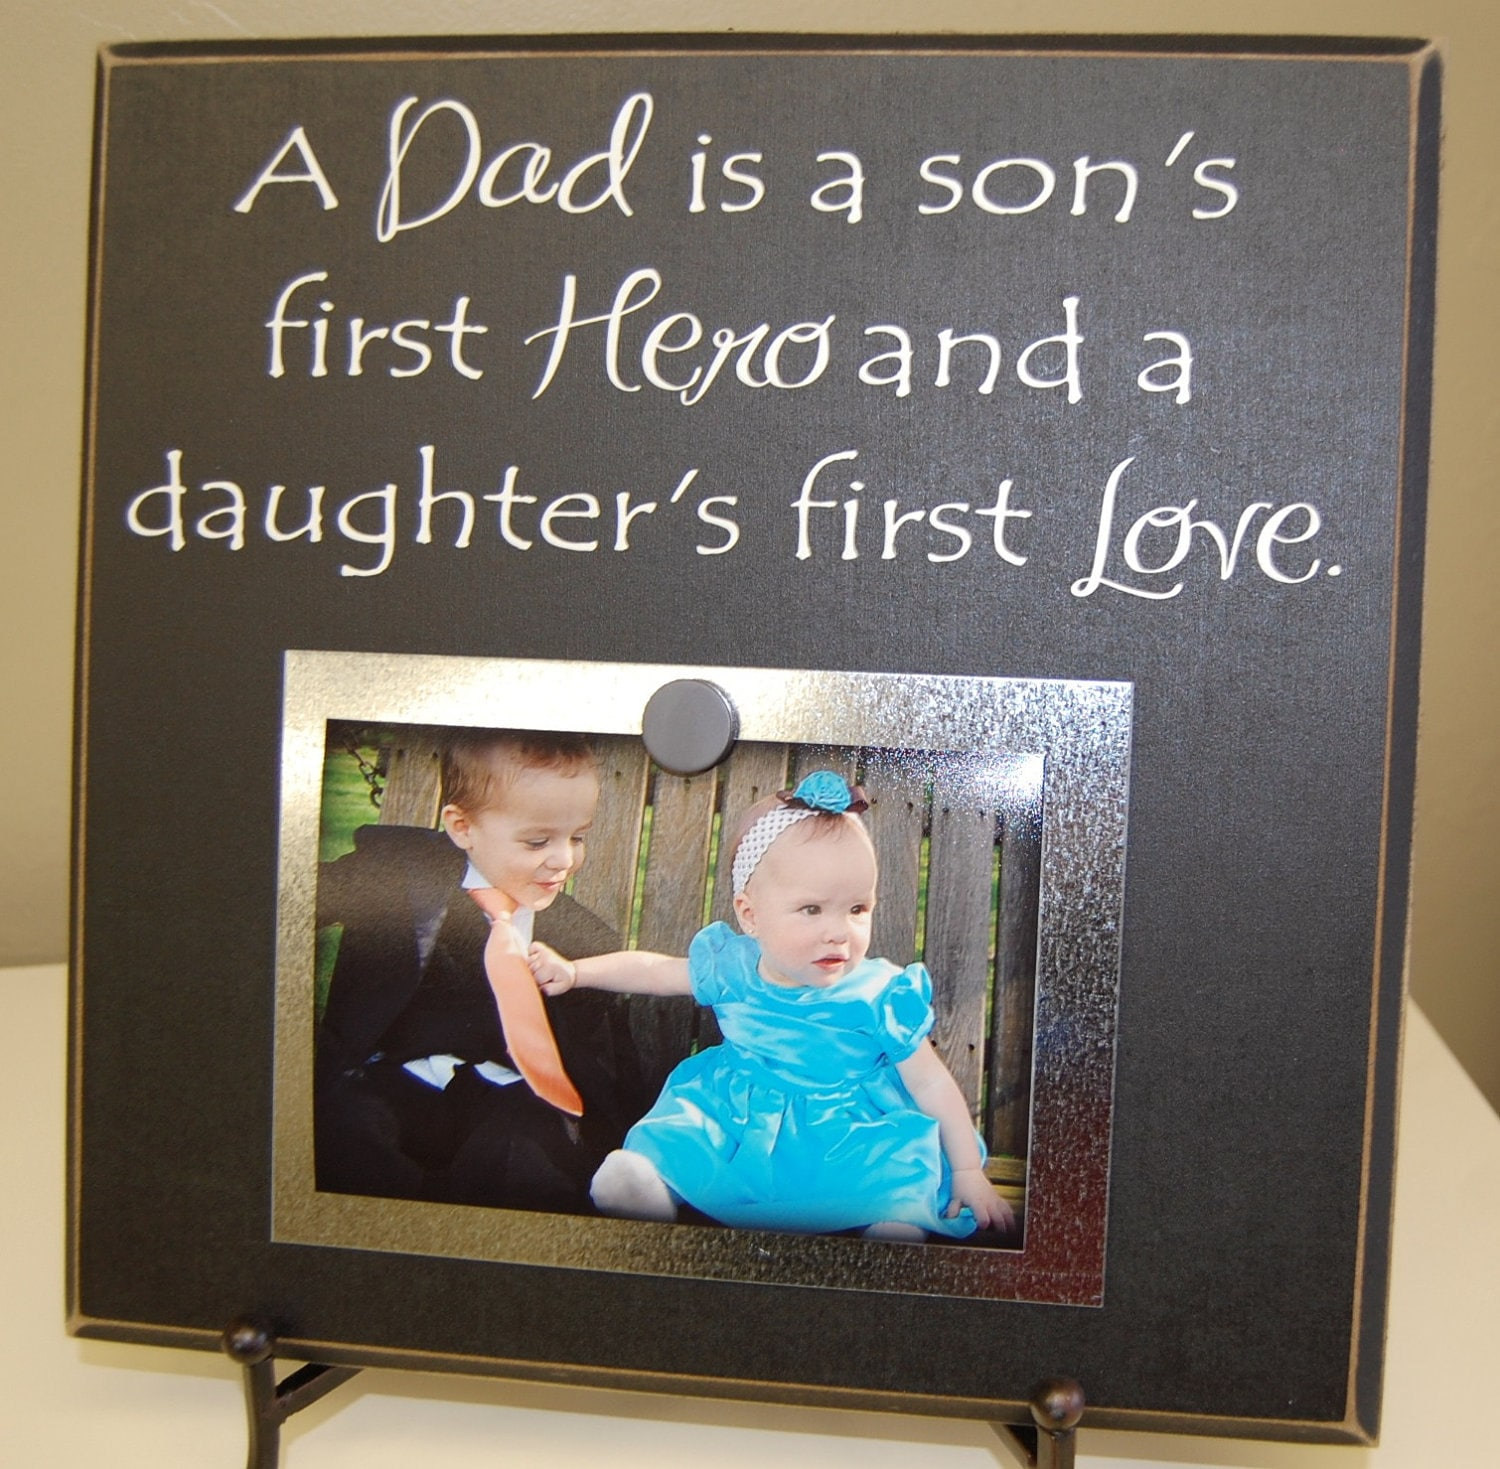 Download A Dad is a son's first hero and a daughter's first